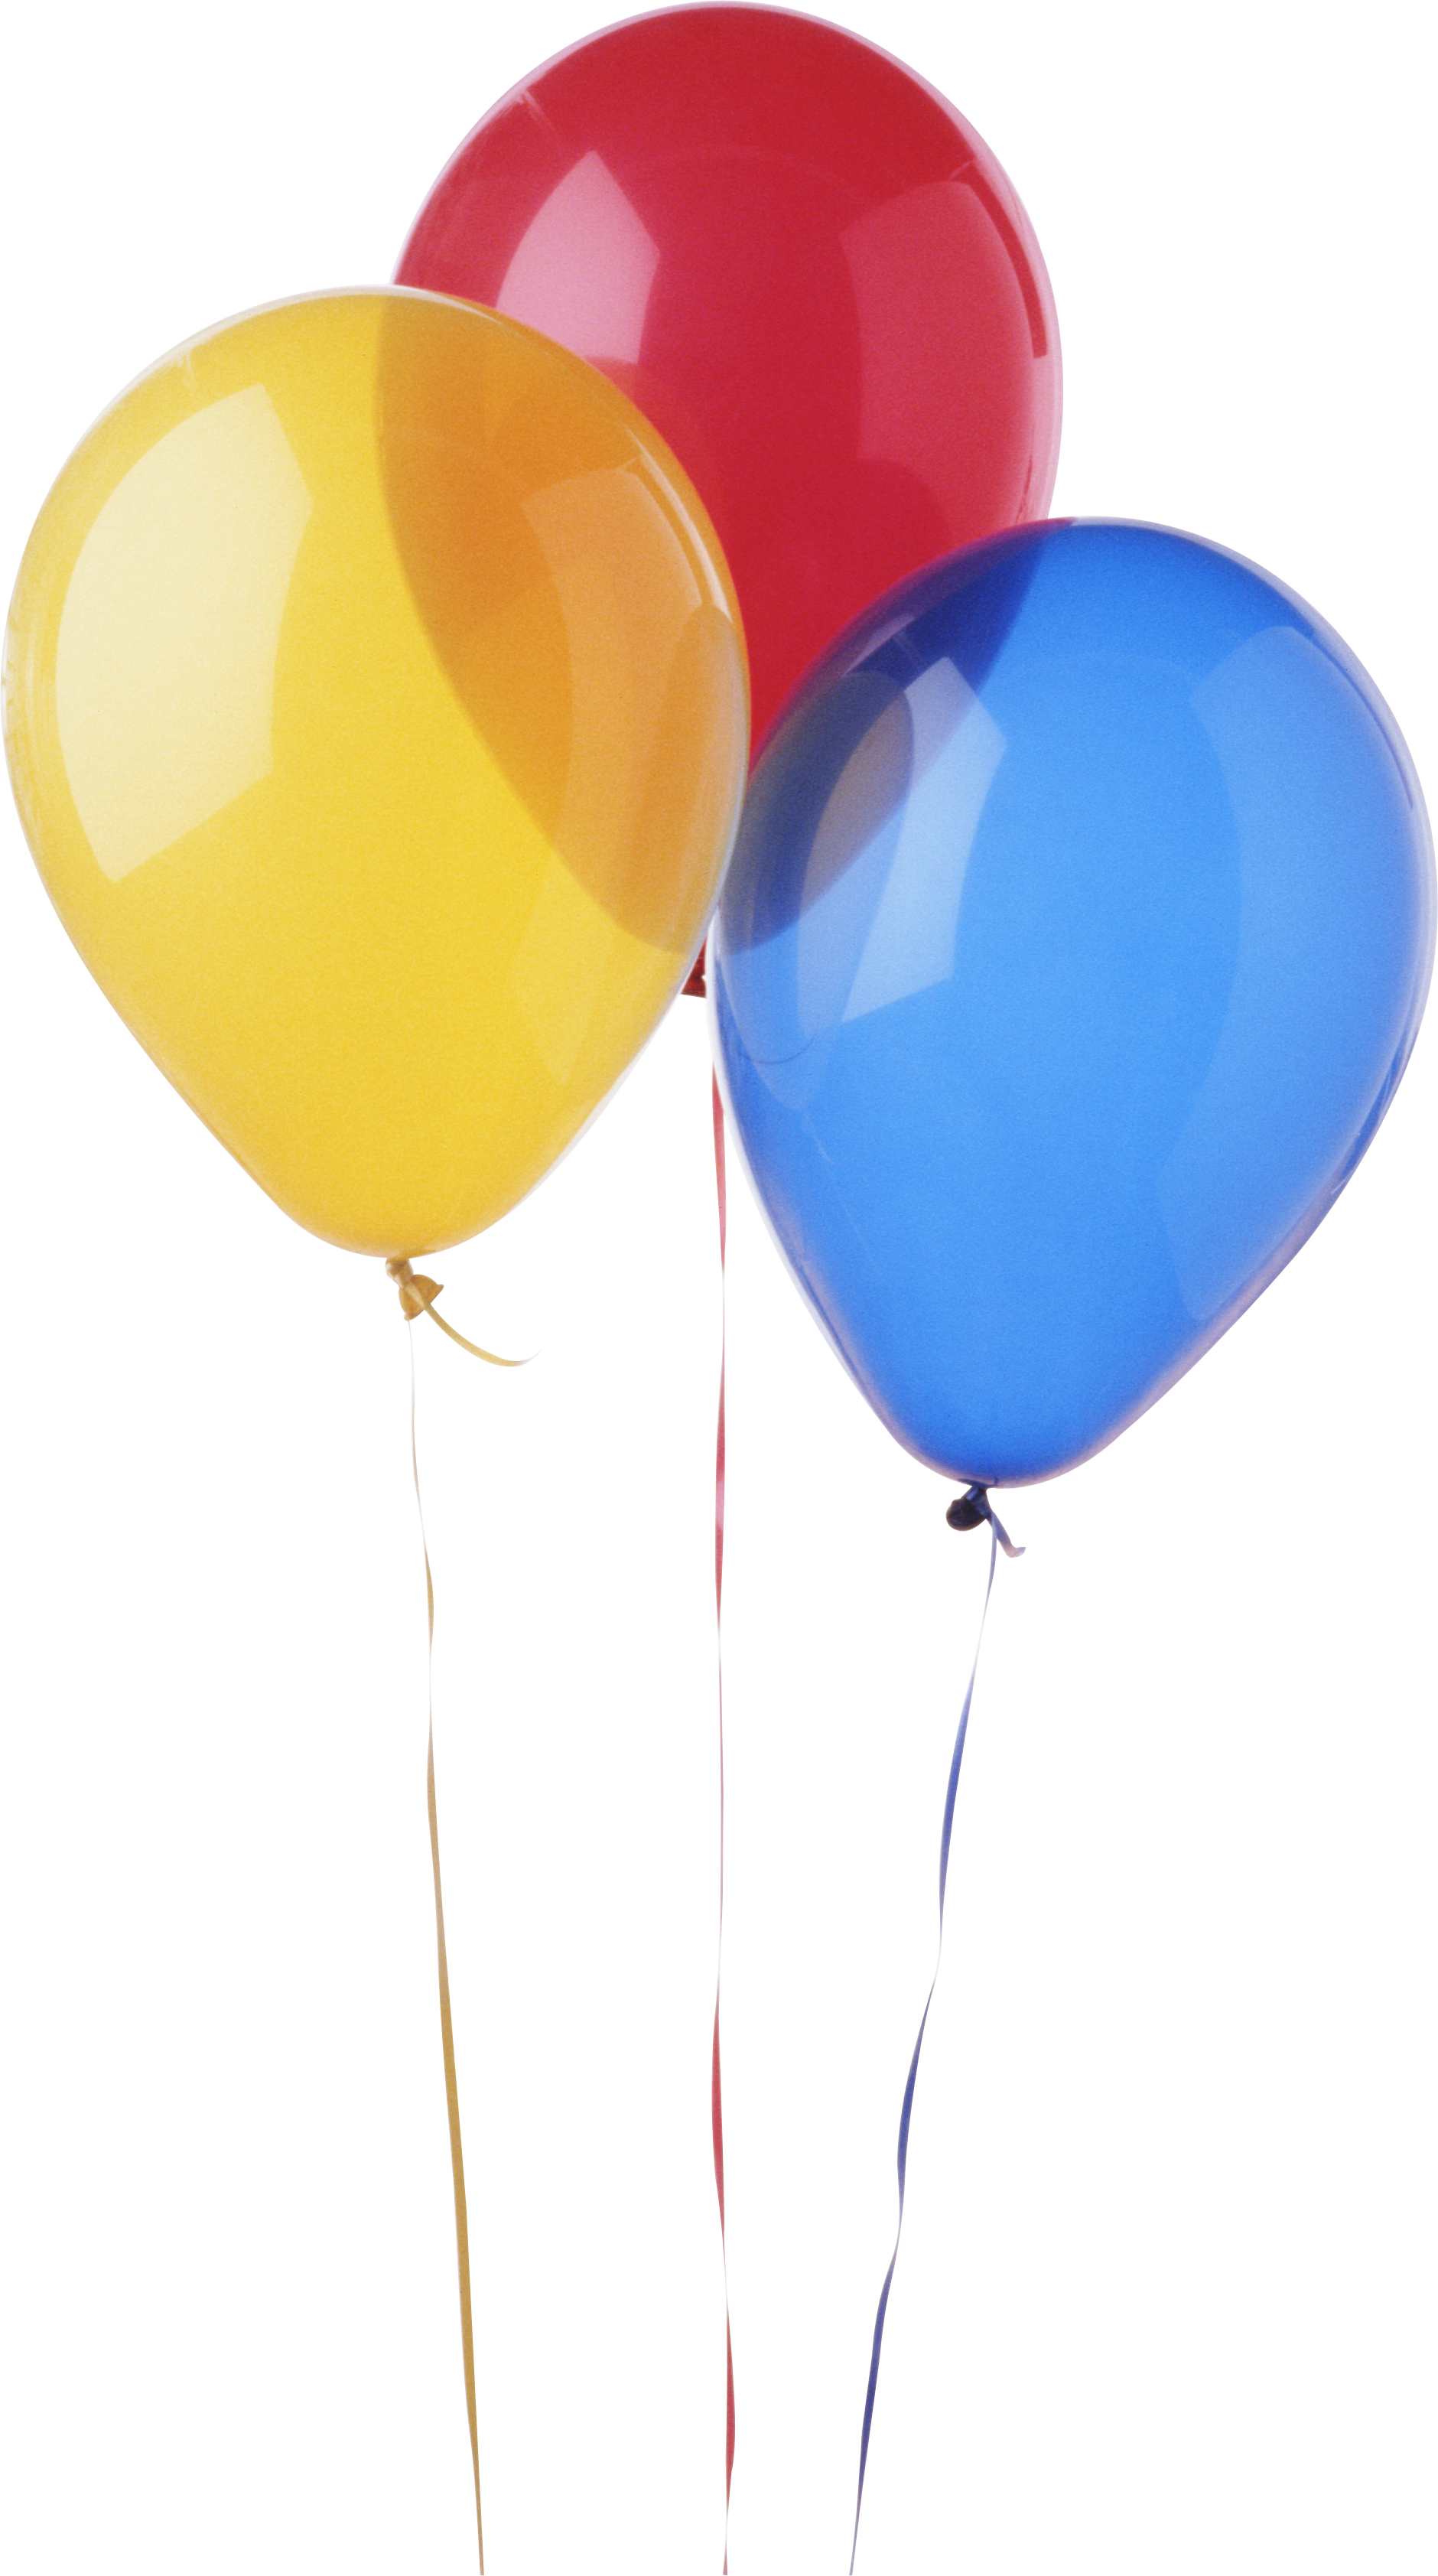 One Balloon Png Transparent One Balloon Png Images